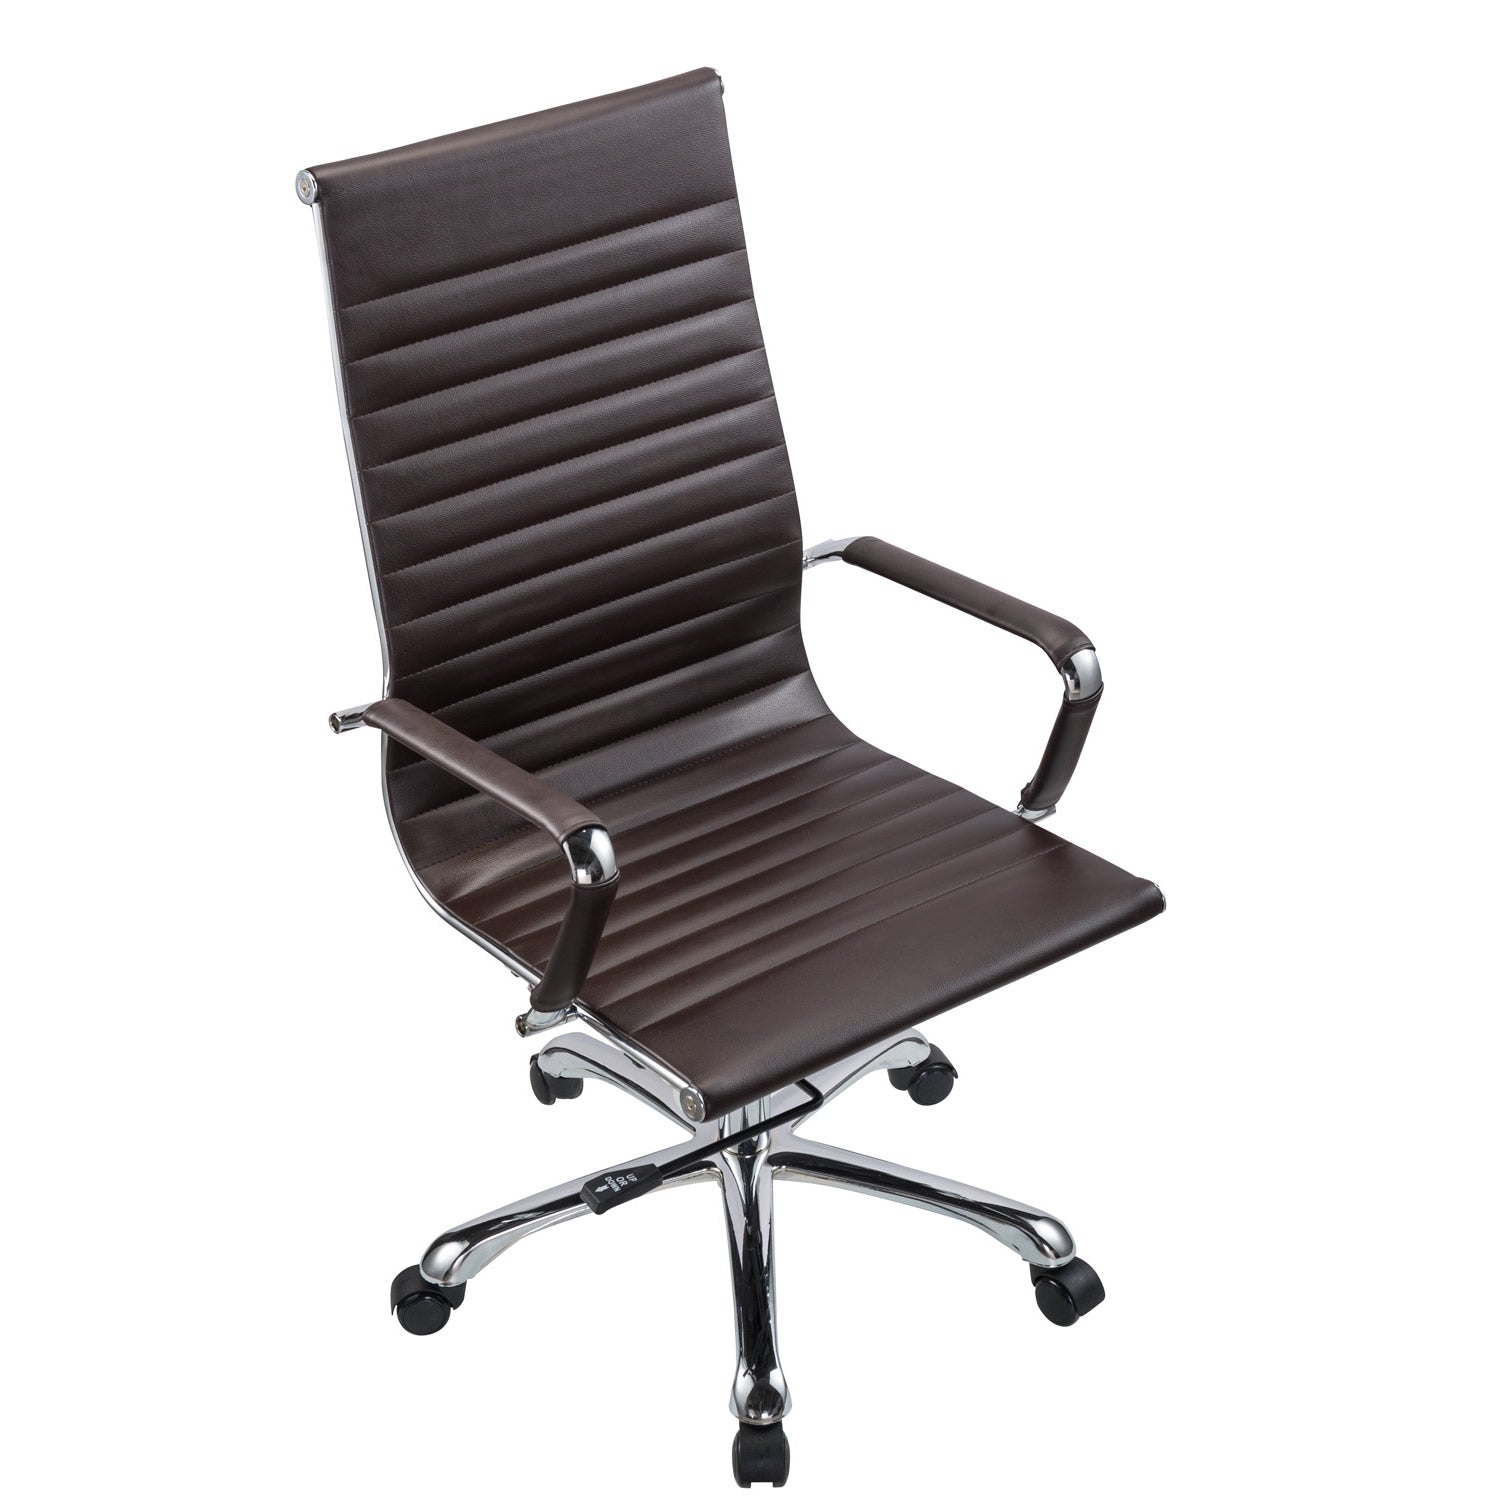 comfort office chair. Bikey Nova Collection, High Back Leather Executive Office Chair (Brown) Comfort